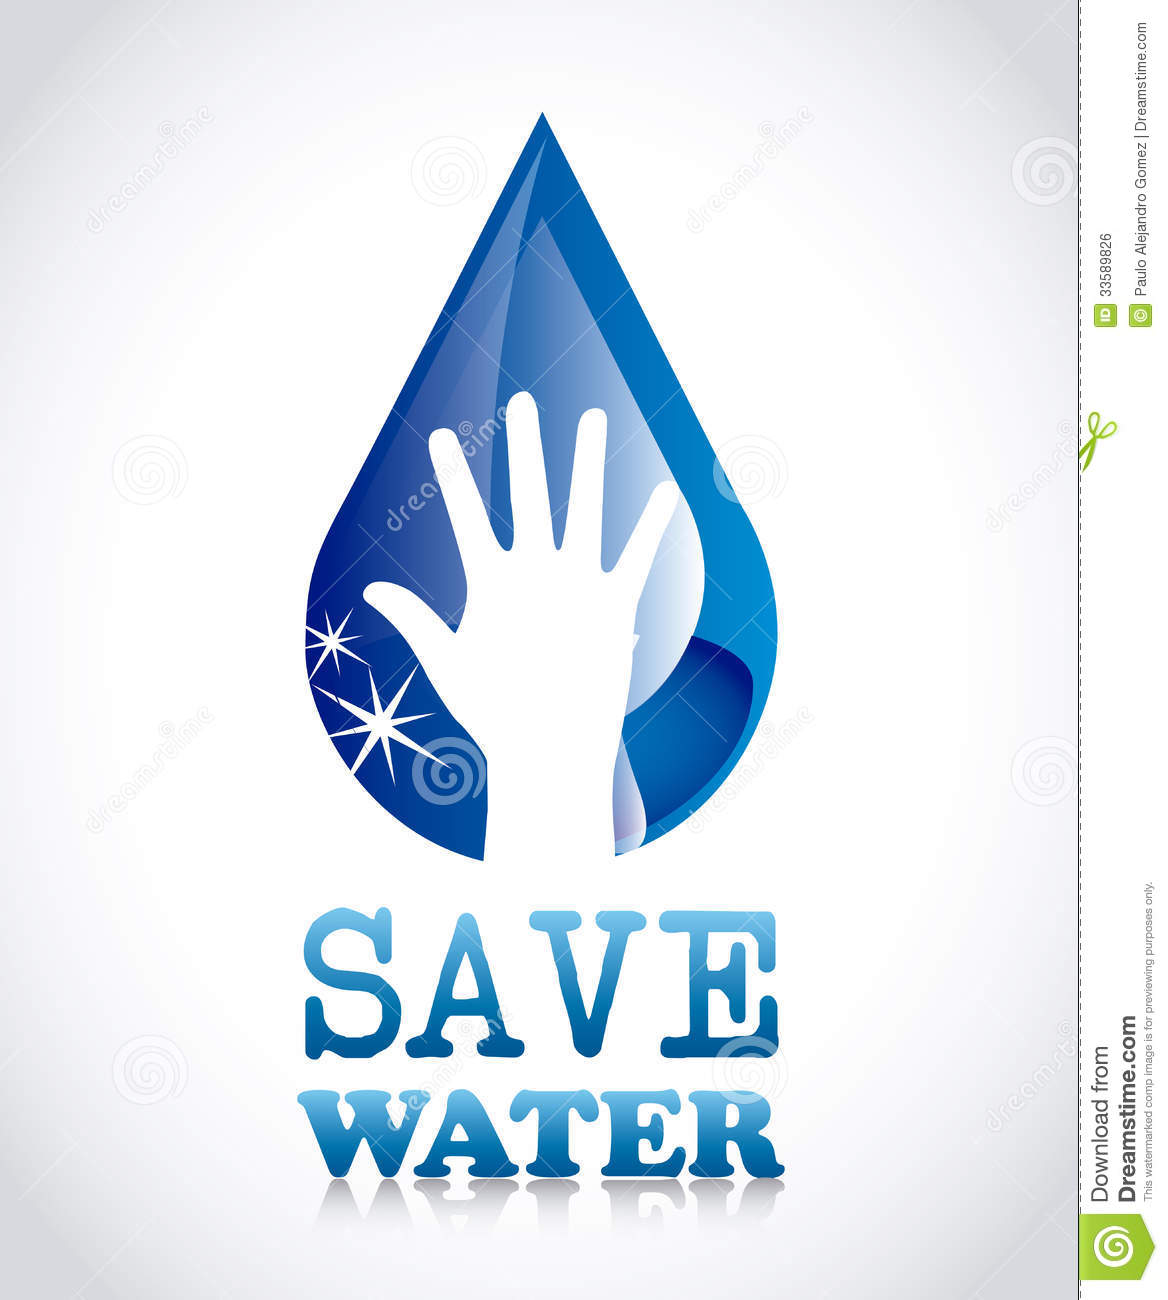 save water royalty stock image image 33589826 save water